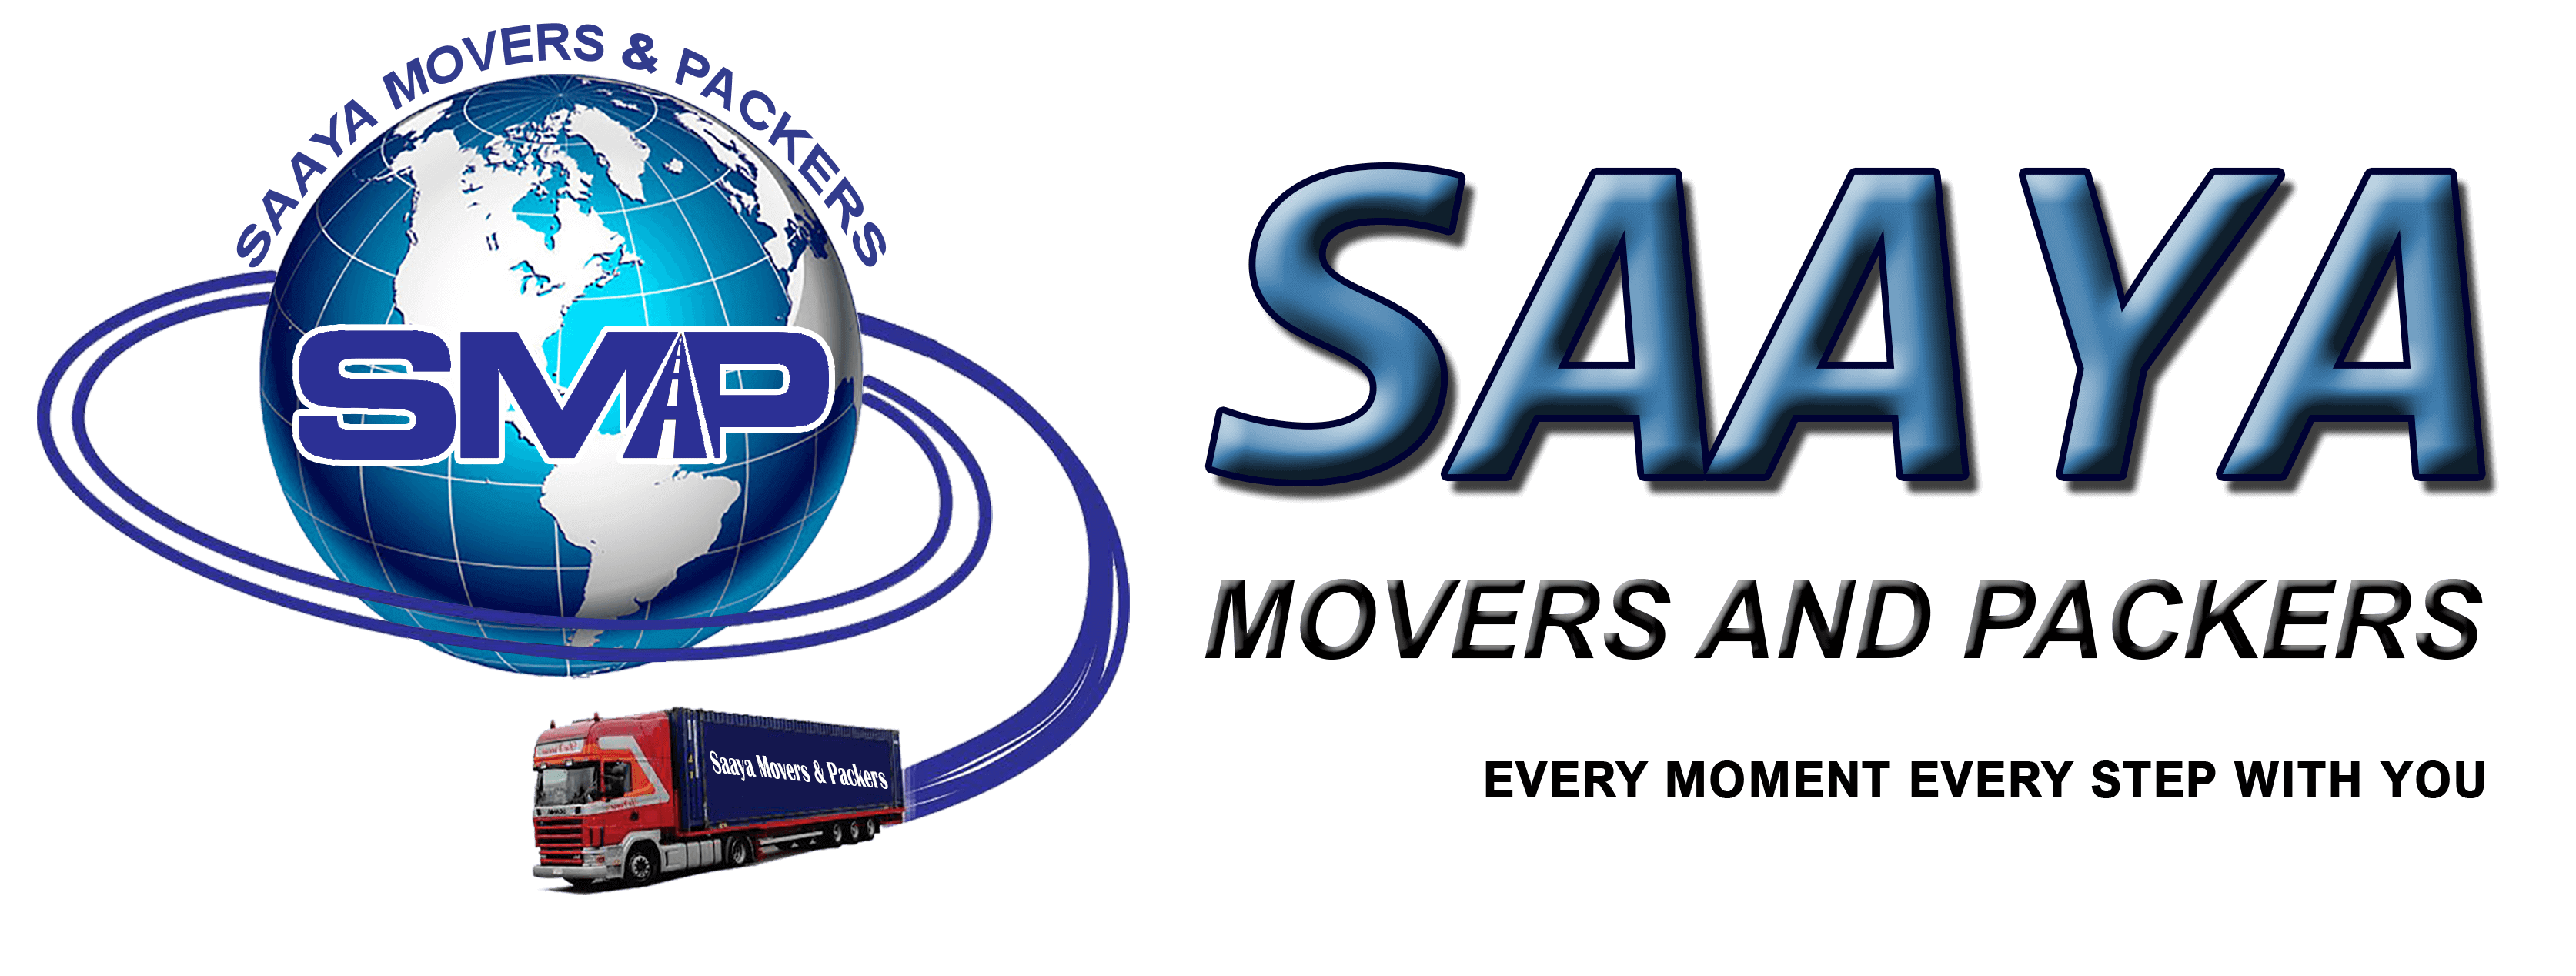 Saaya Movers